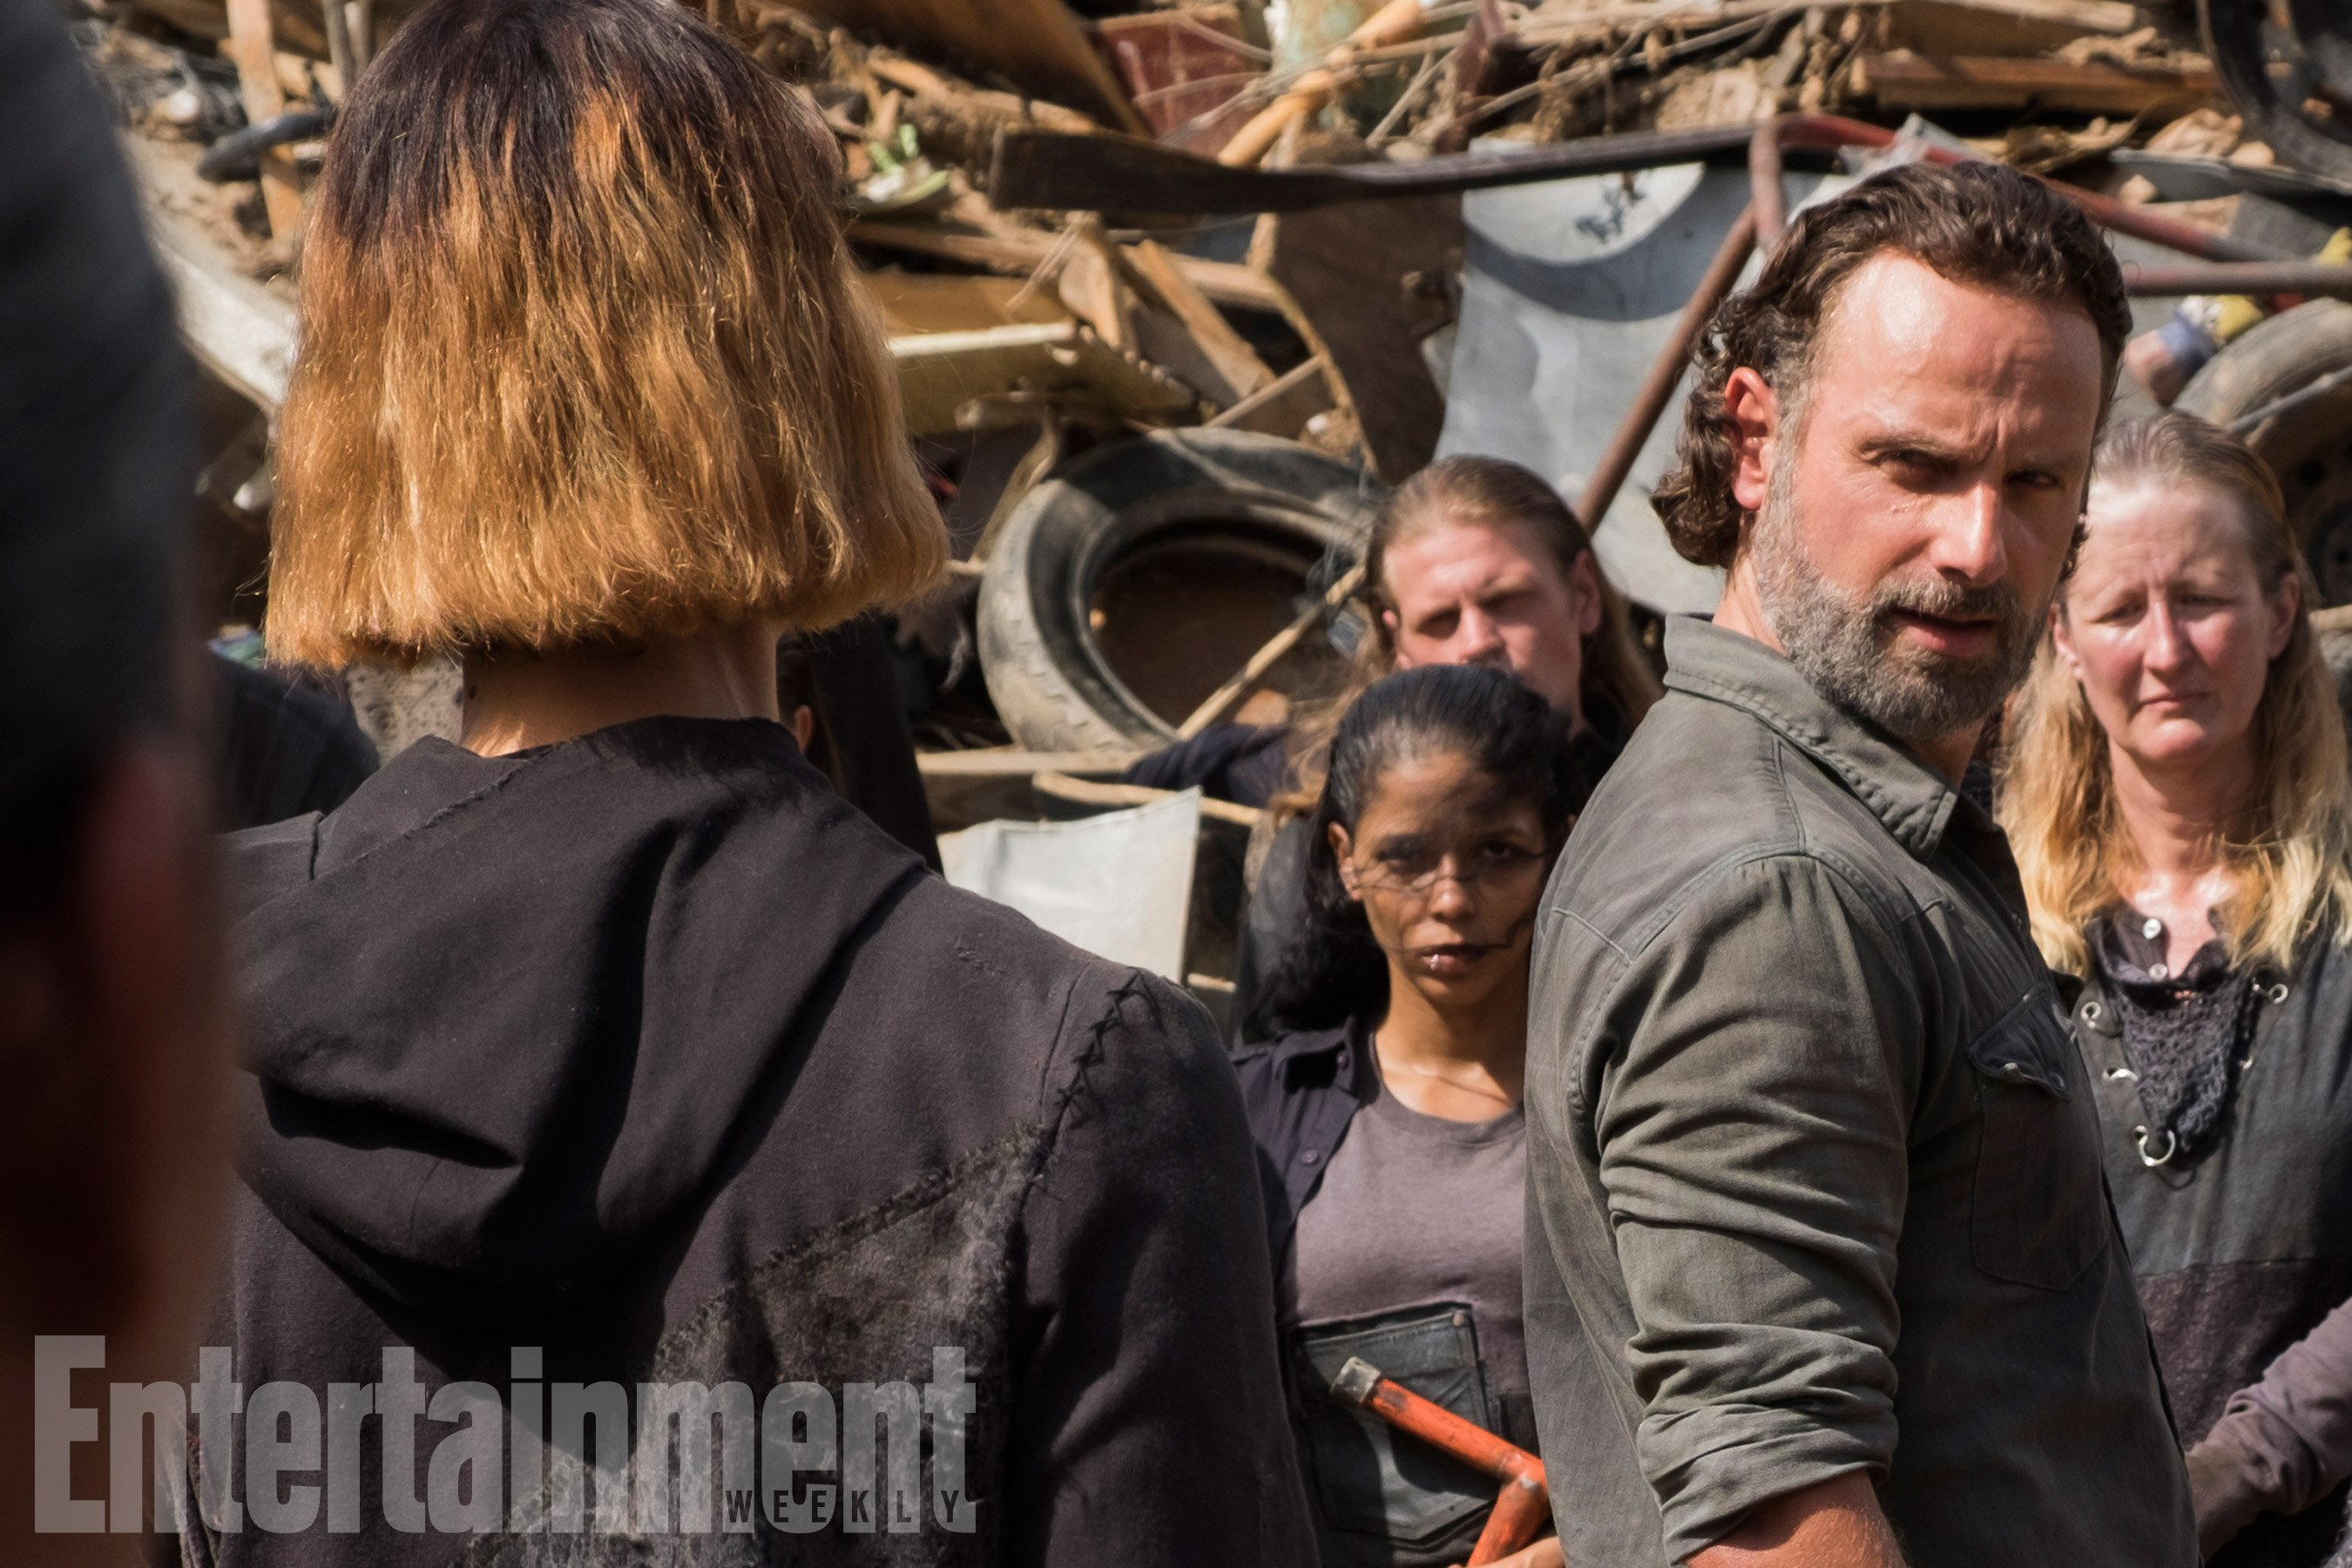 The Walking Dead Producers Toned Down The Violence After Season 7 Premiere